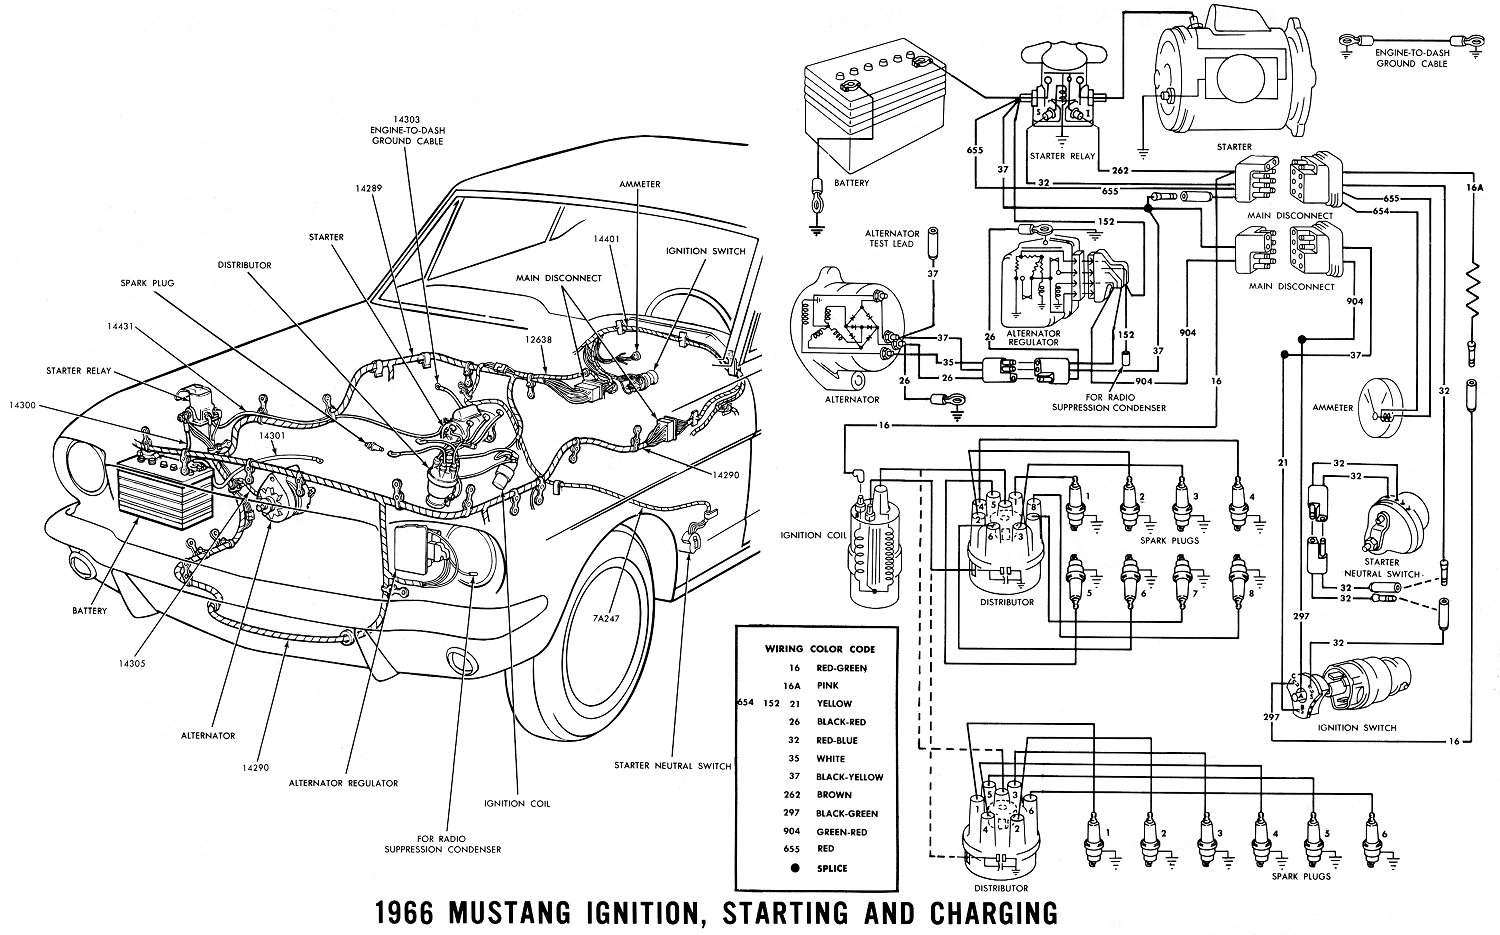 66ignit 66 mustang wiring diagram online 65 ford mustang wiring diagram 1969 mustang wiring diagram online at gsmx.co